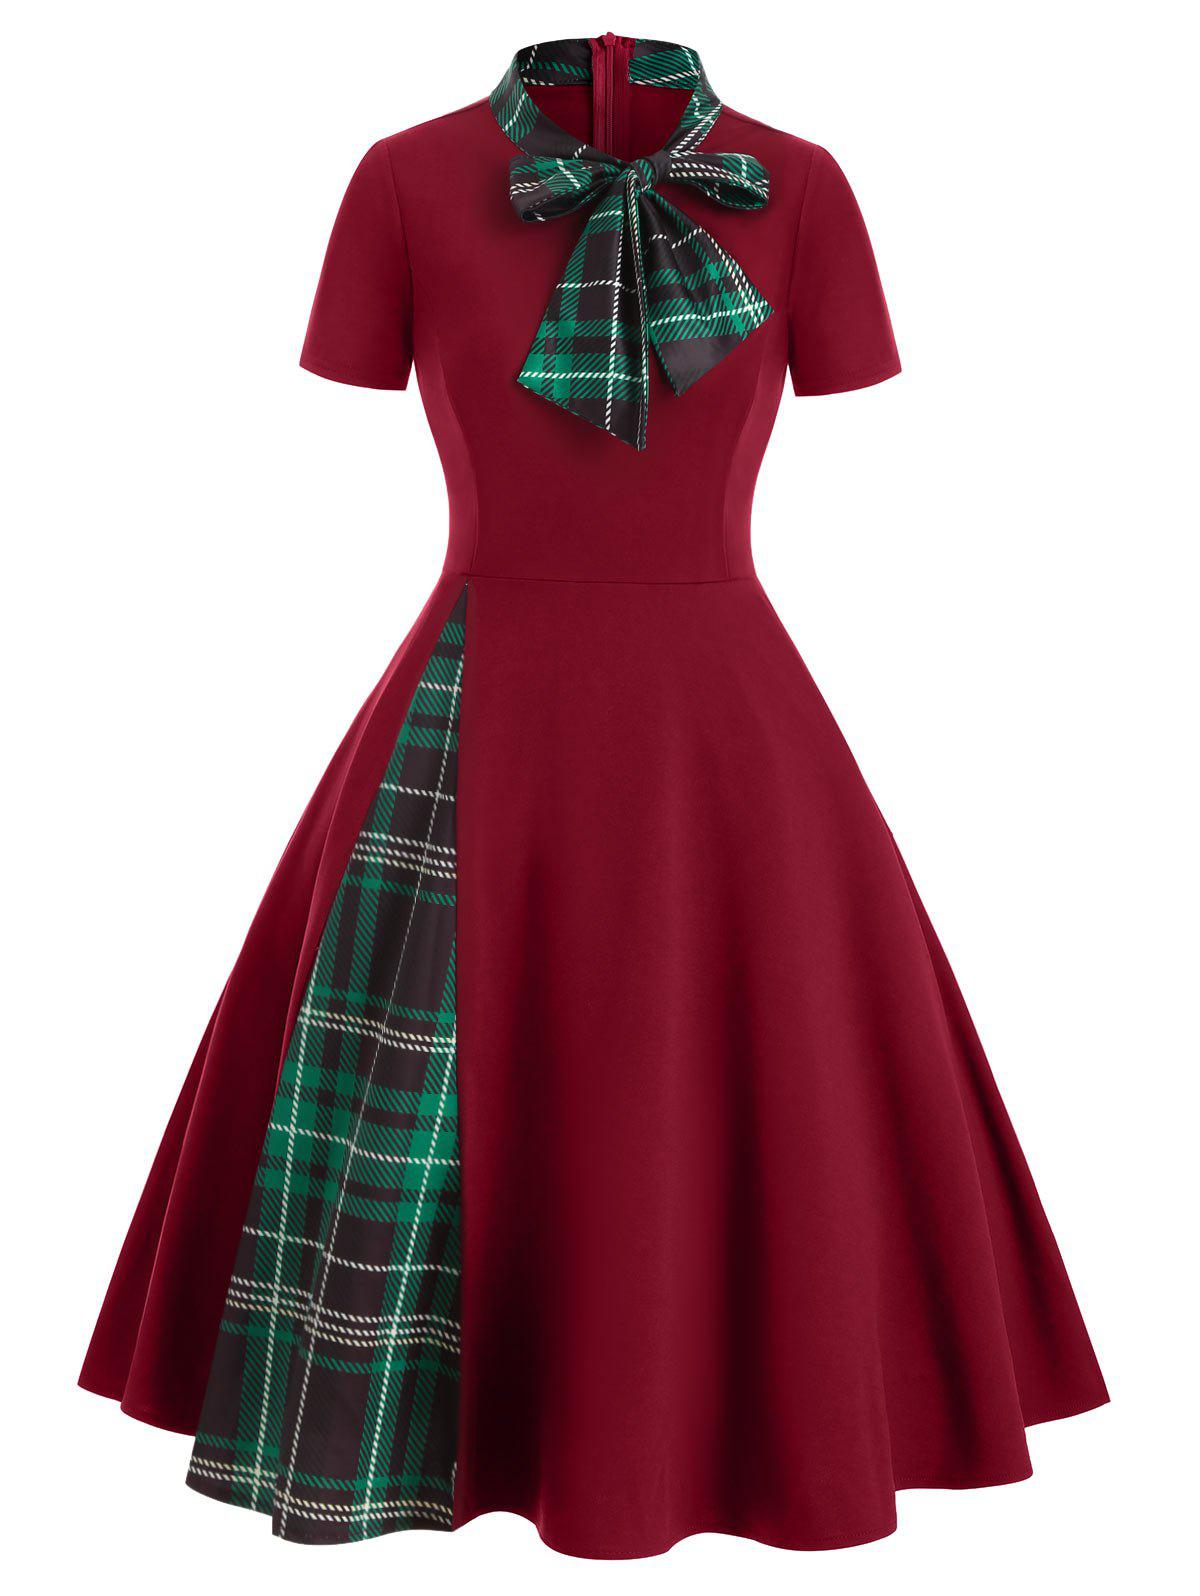 Plaid Panel Bow Tie Vintage Rockabilly Style A Line Dress - RED WINE S